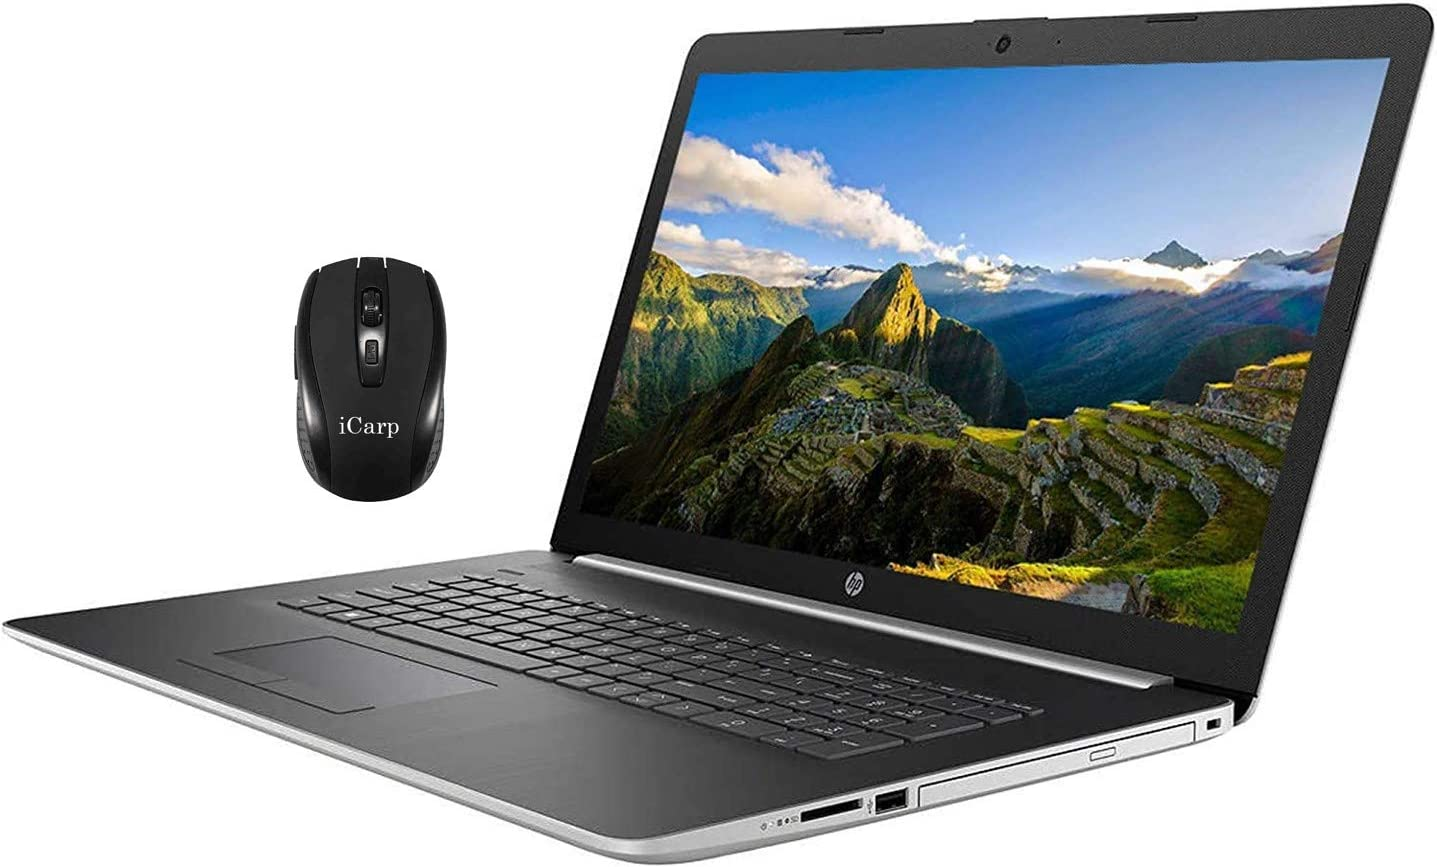 "2020 Flagship HP 17 Laptop Computer 17.3"" Full HD IPS Display 10th Gen Intel Quad-Core i5-1035G1 (Beats i7-8550U) 12GB DDR4 1TB HDD DVD Backlit KB WiFi HDMI Webcam Win 10 + iCarp Wireless Mouse"